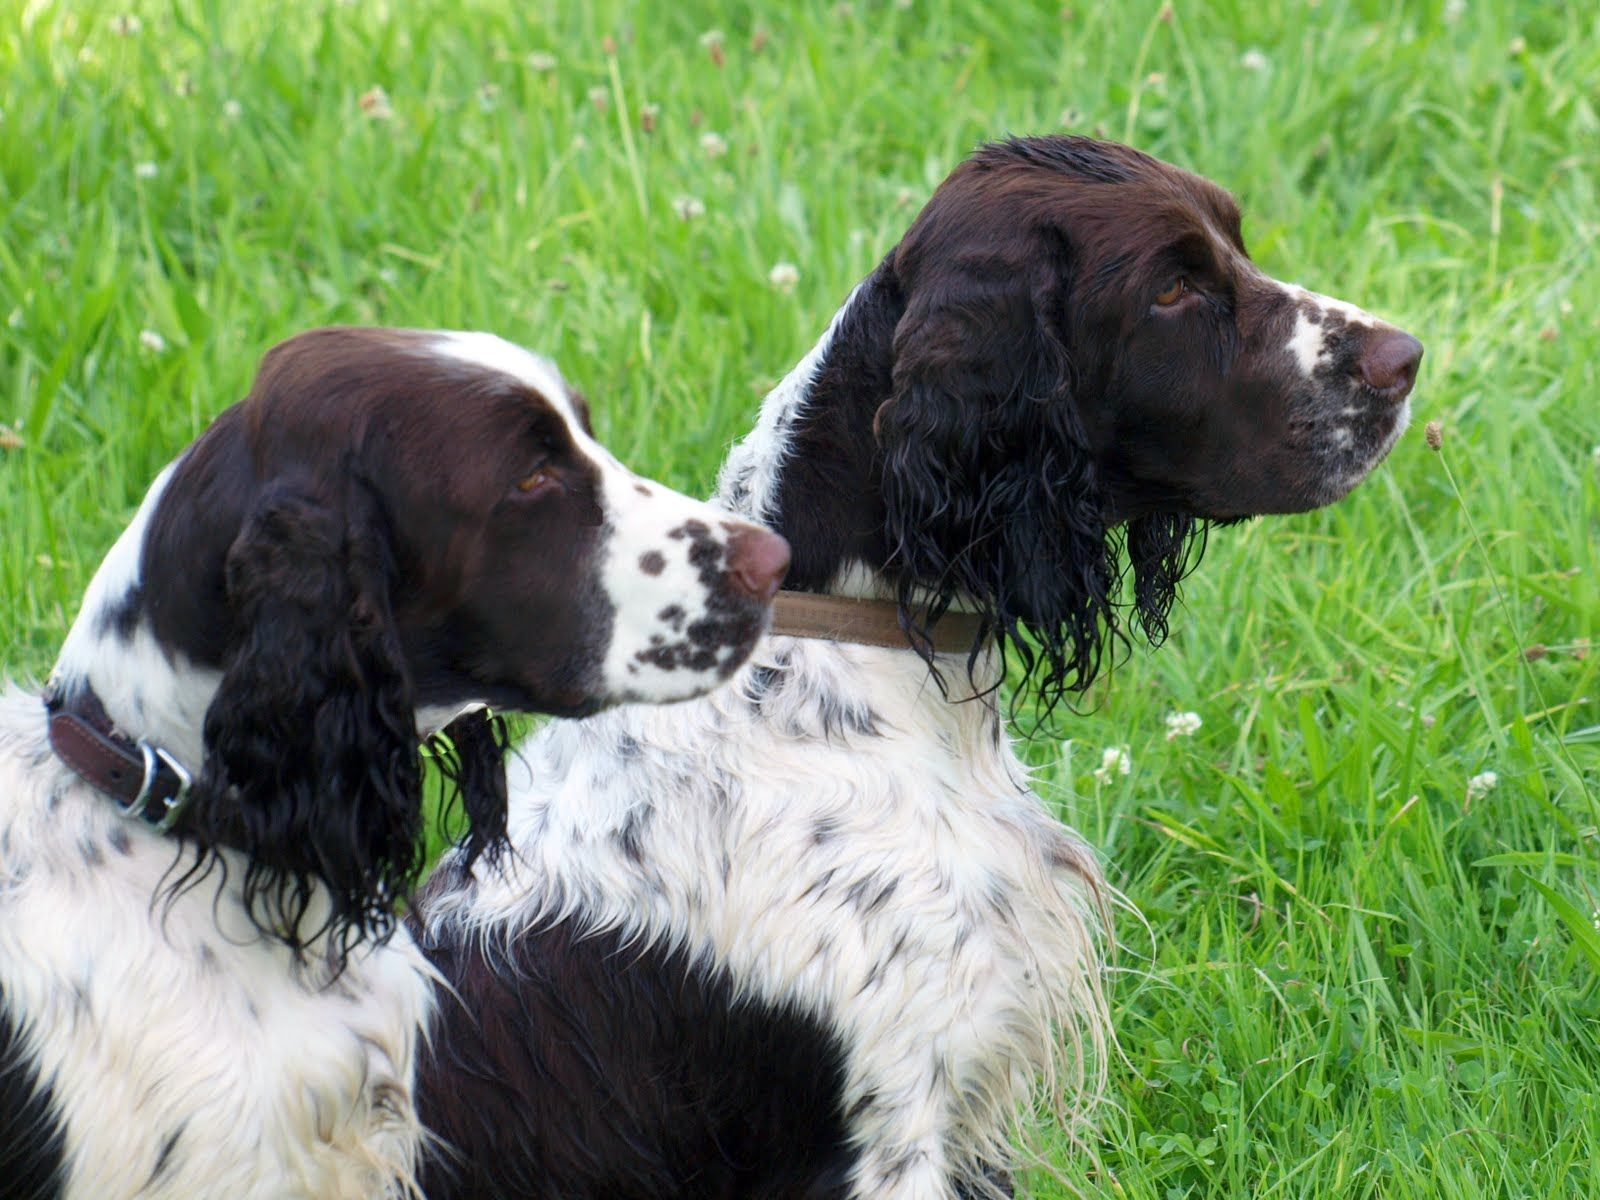 springers in the field English springer spaniel, English